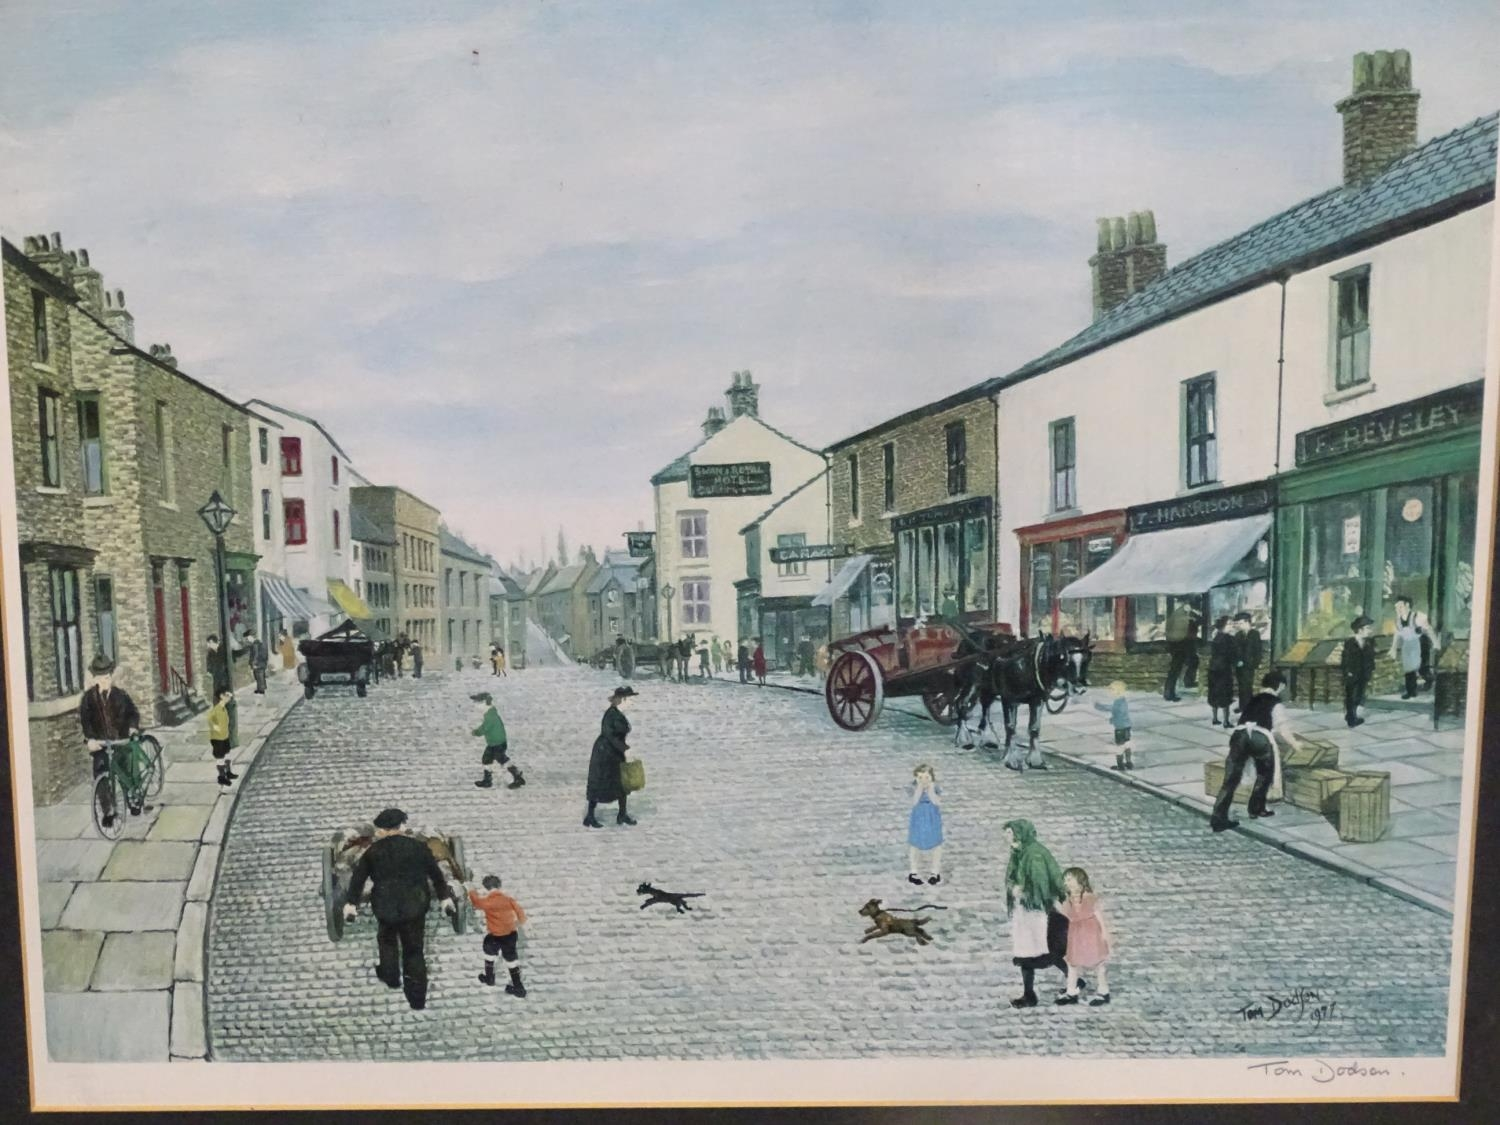 After Tom Dodson, 20th century, Limited edition coloured lithograph, The High Street Clitheroe, - Image 3 of 5